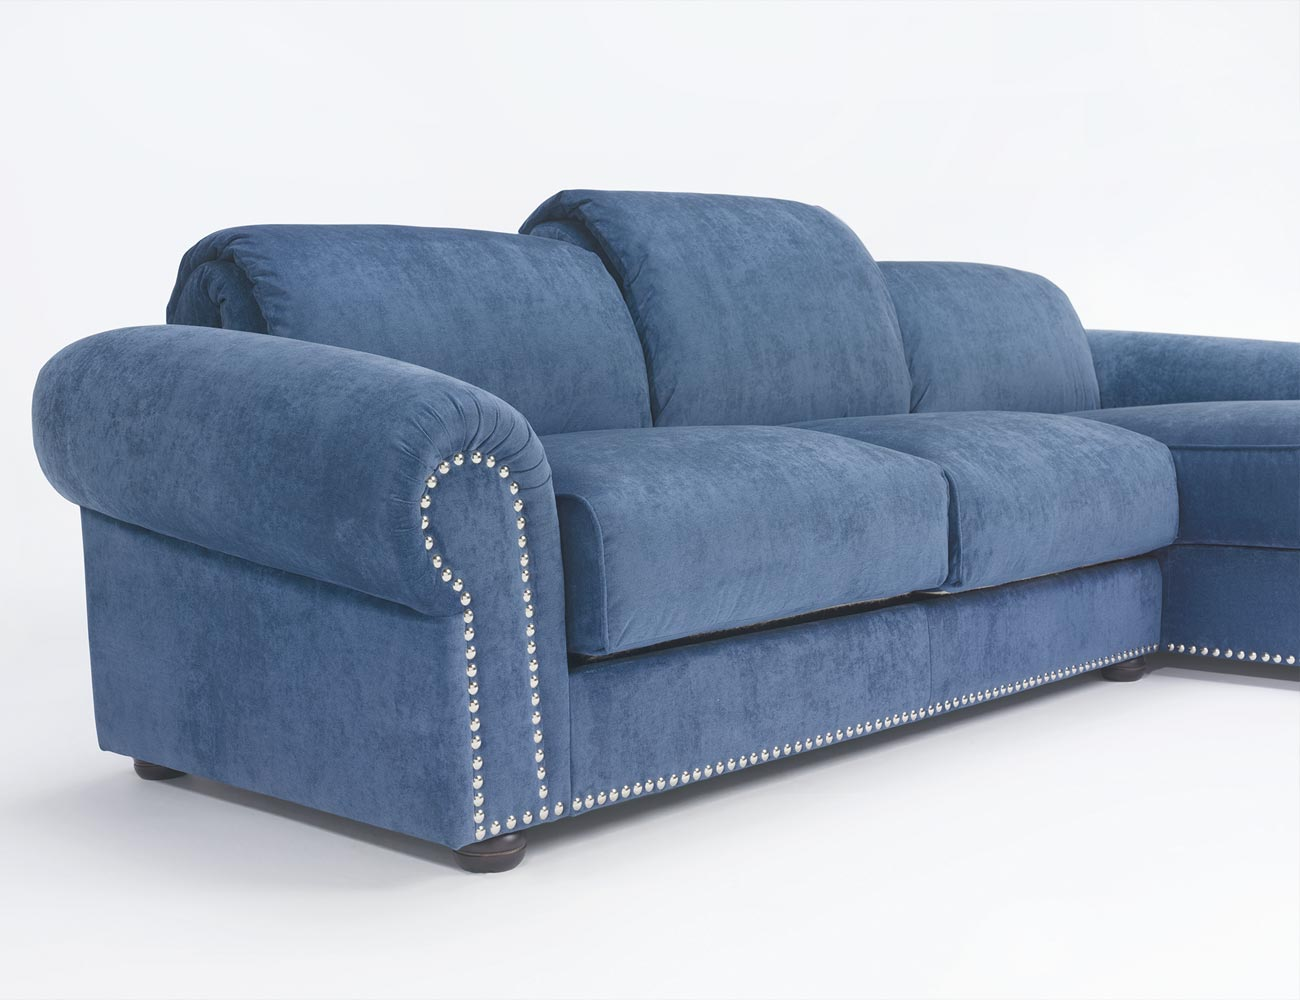 Sofa chaiselongue gran lujo decorativo azul 114